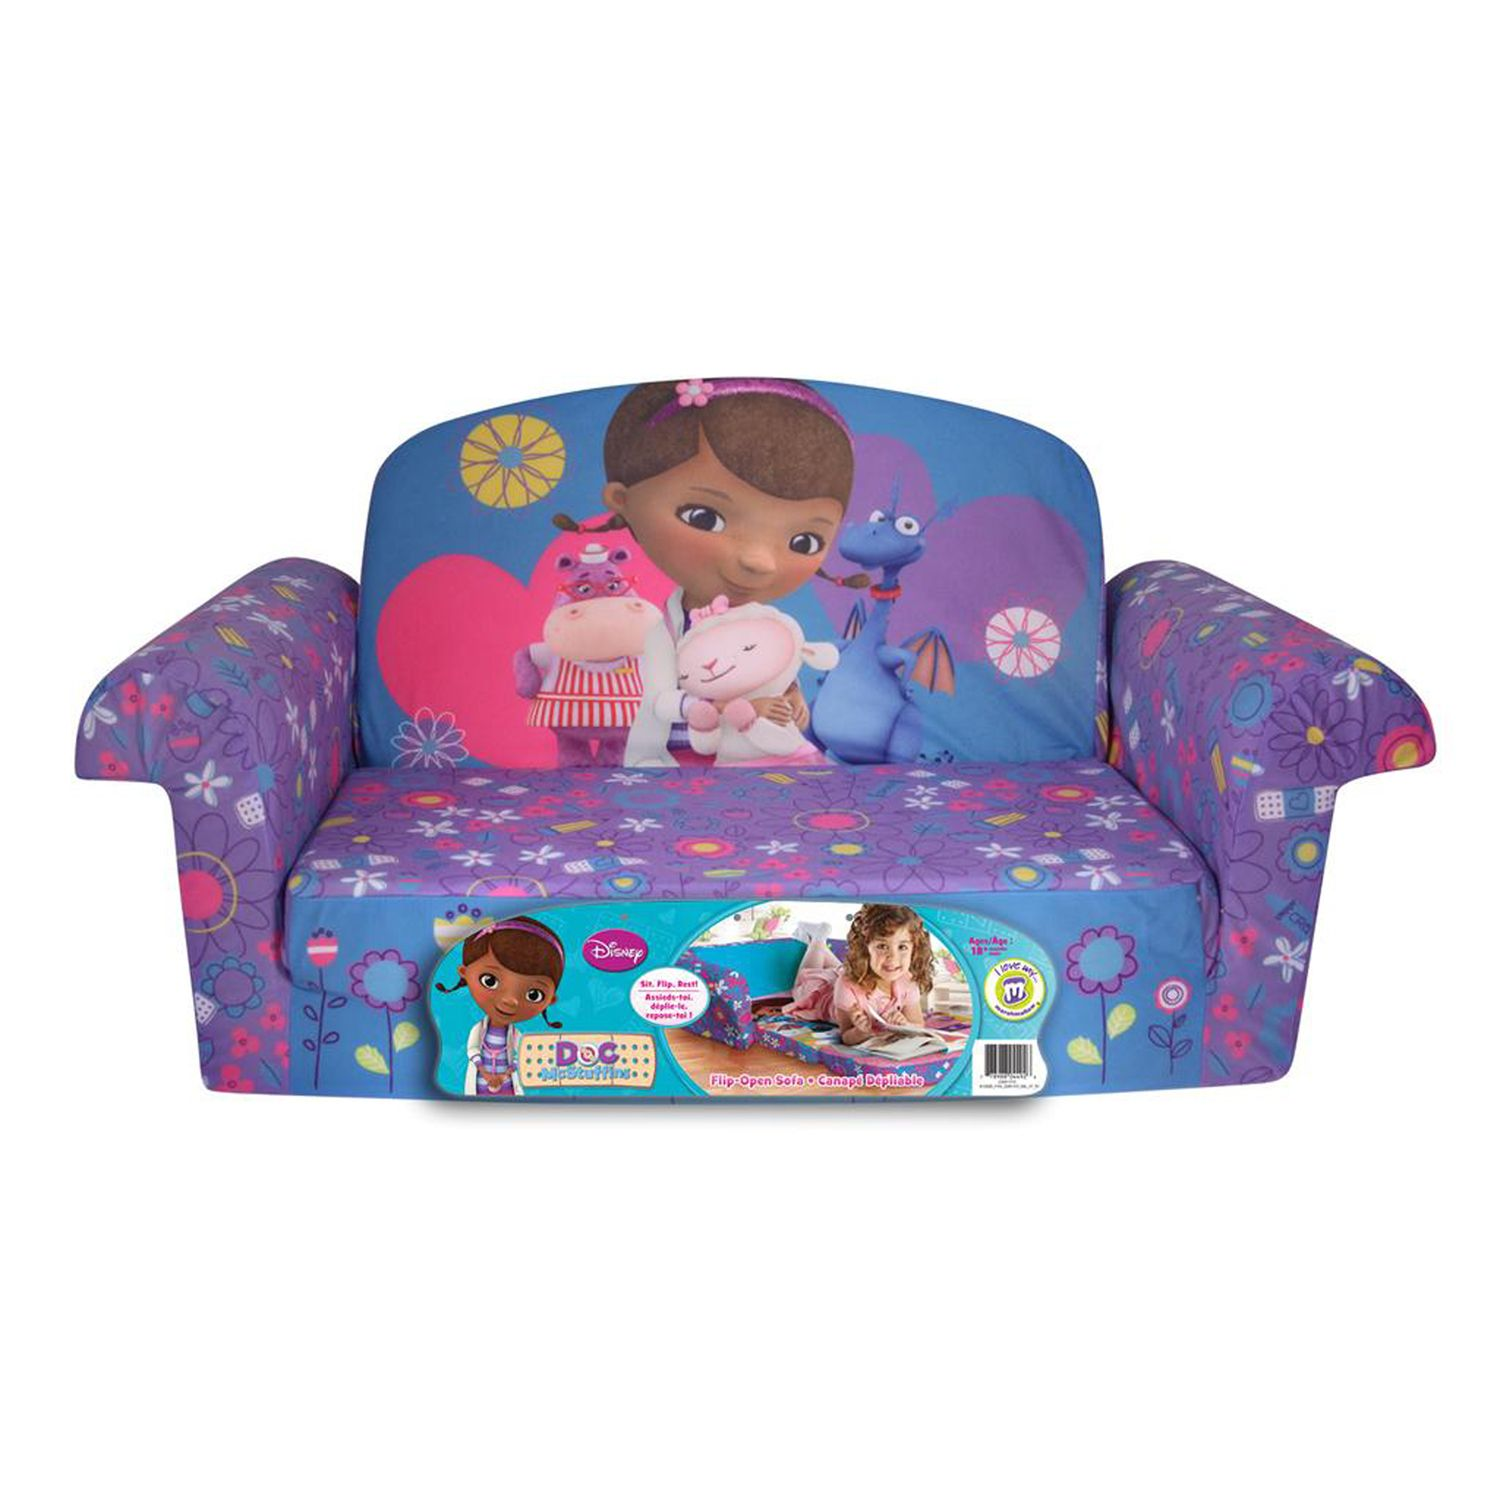 Disney Doc McStuffins Marshmallow 2 In 1 Flip Open Kids Sofa By Spin Master